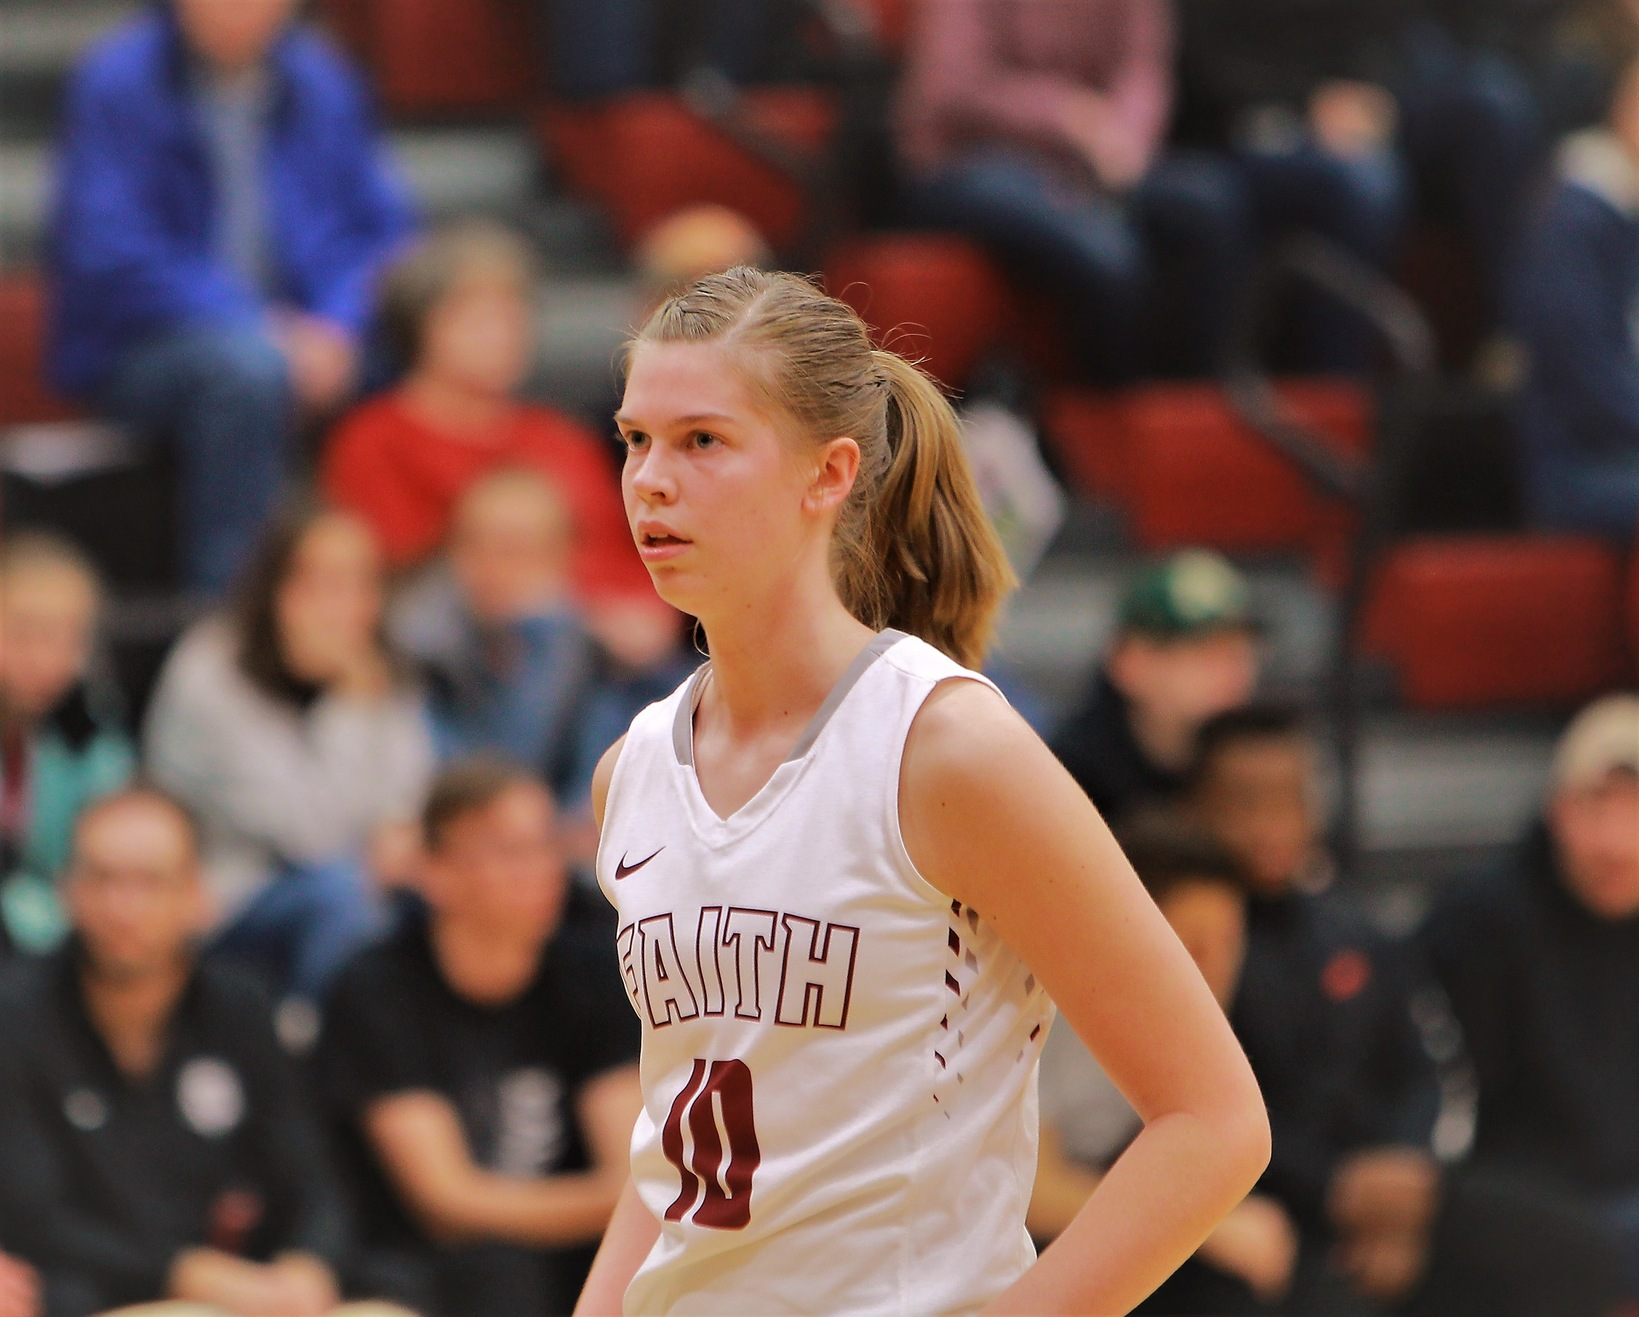 Faith Eagles sophomore Bekah Smith led the team with 10 rebounds in a loss to Ozark Christian